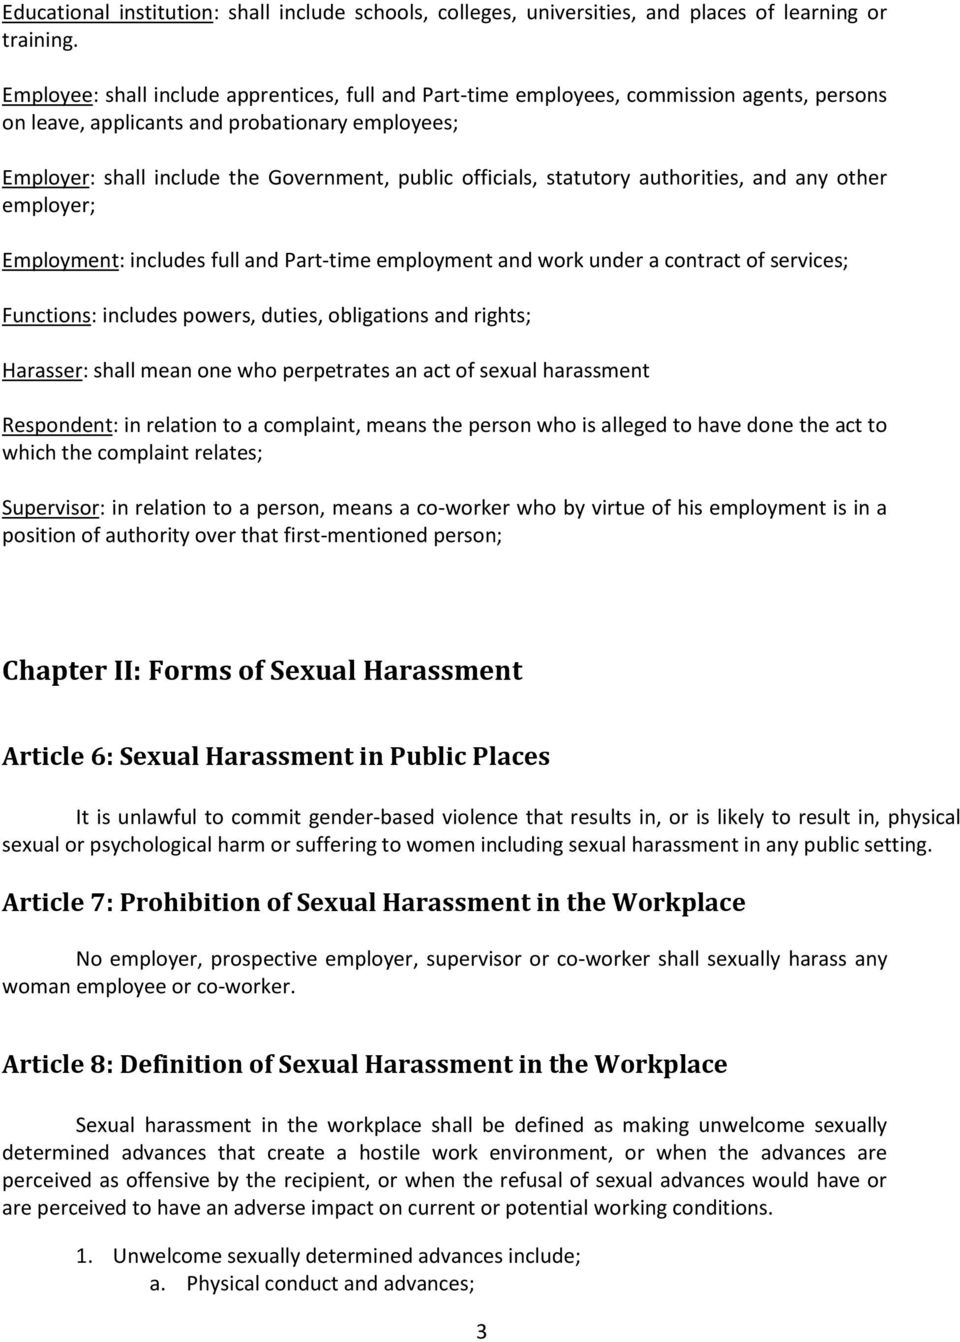 officials, statutory authorities, and any other employer; Employment: includes full and Part-time employment and work under a contract of services; Functions: includes powers, duties, obligations and